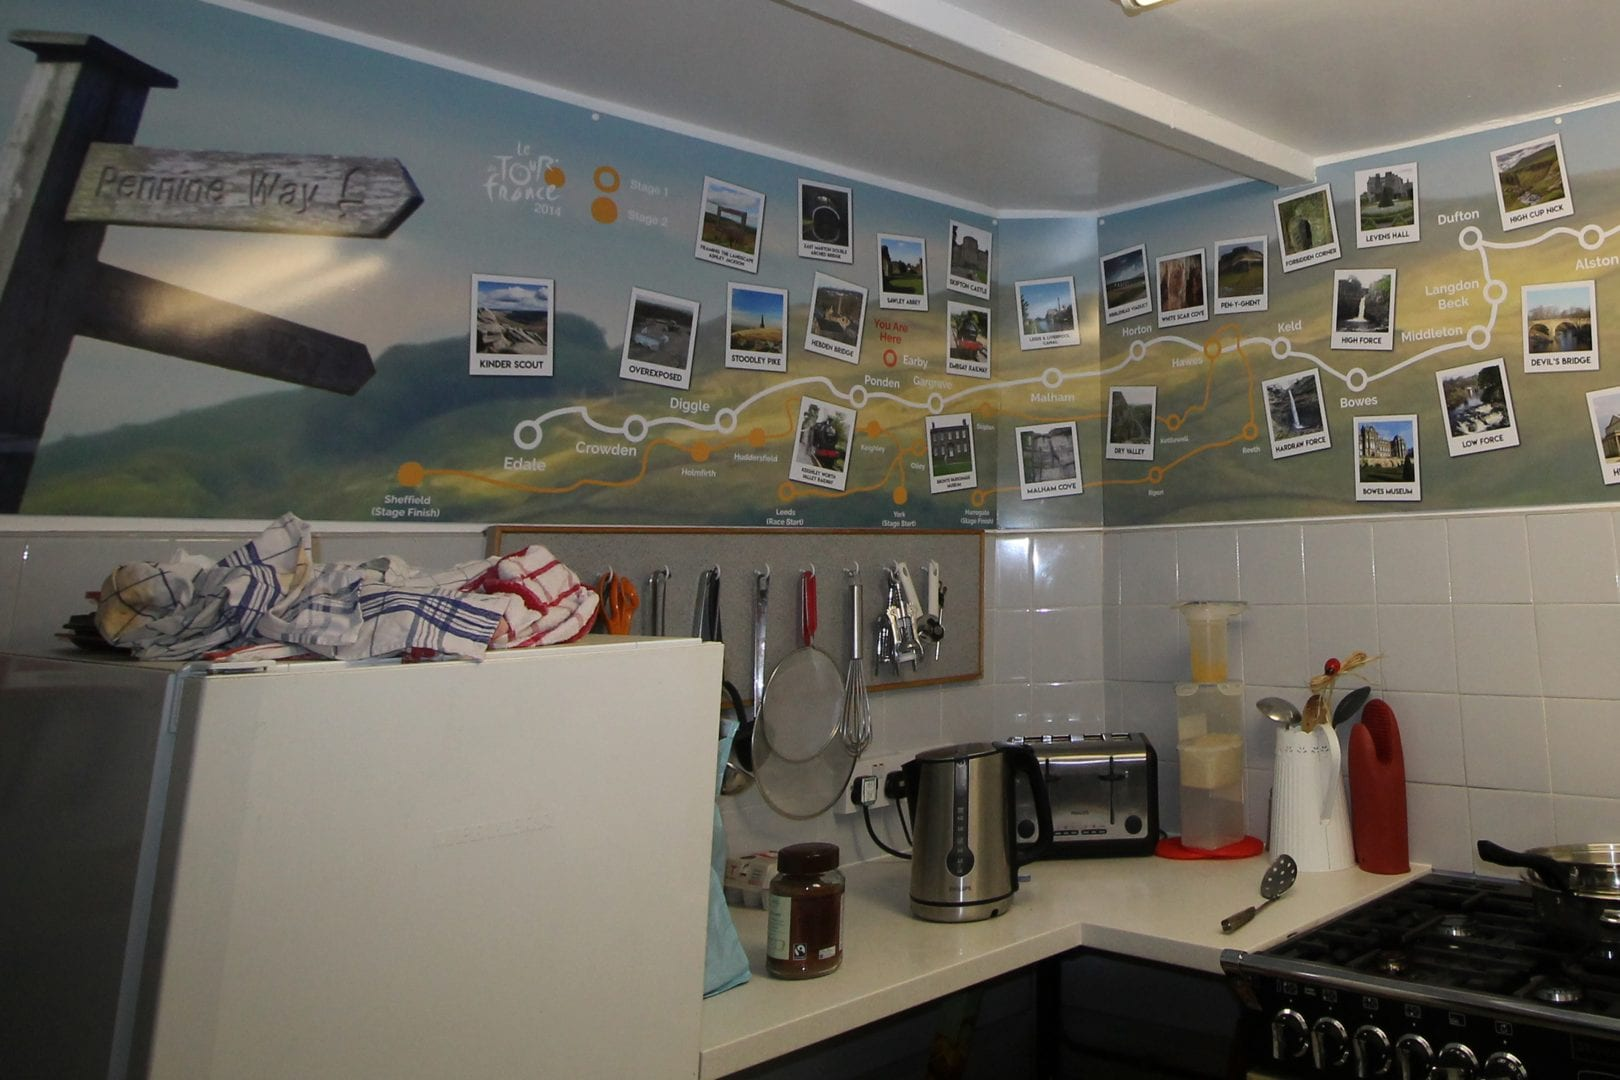 Pennine Bridleway poster in the self catering kitchen of earby hostel